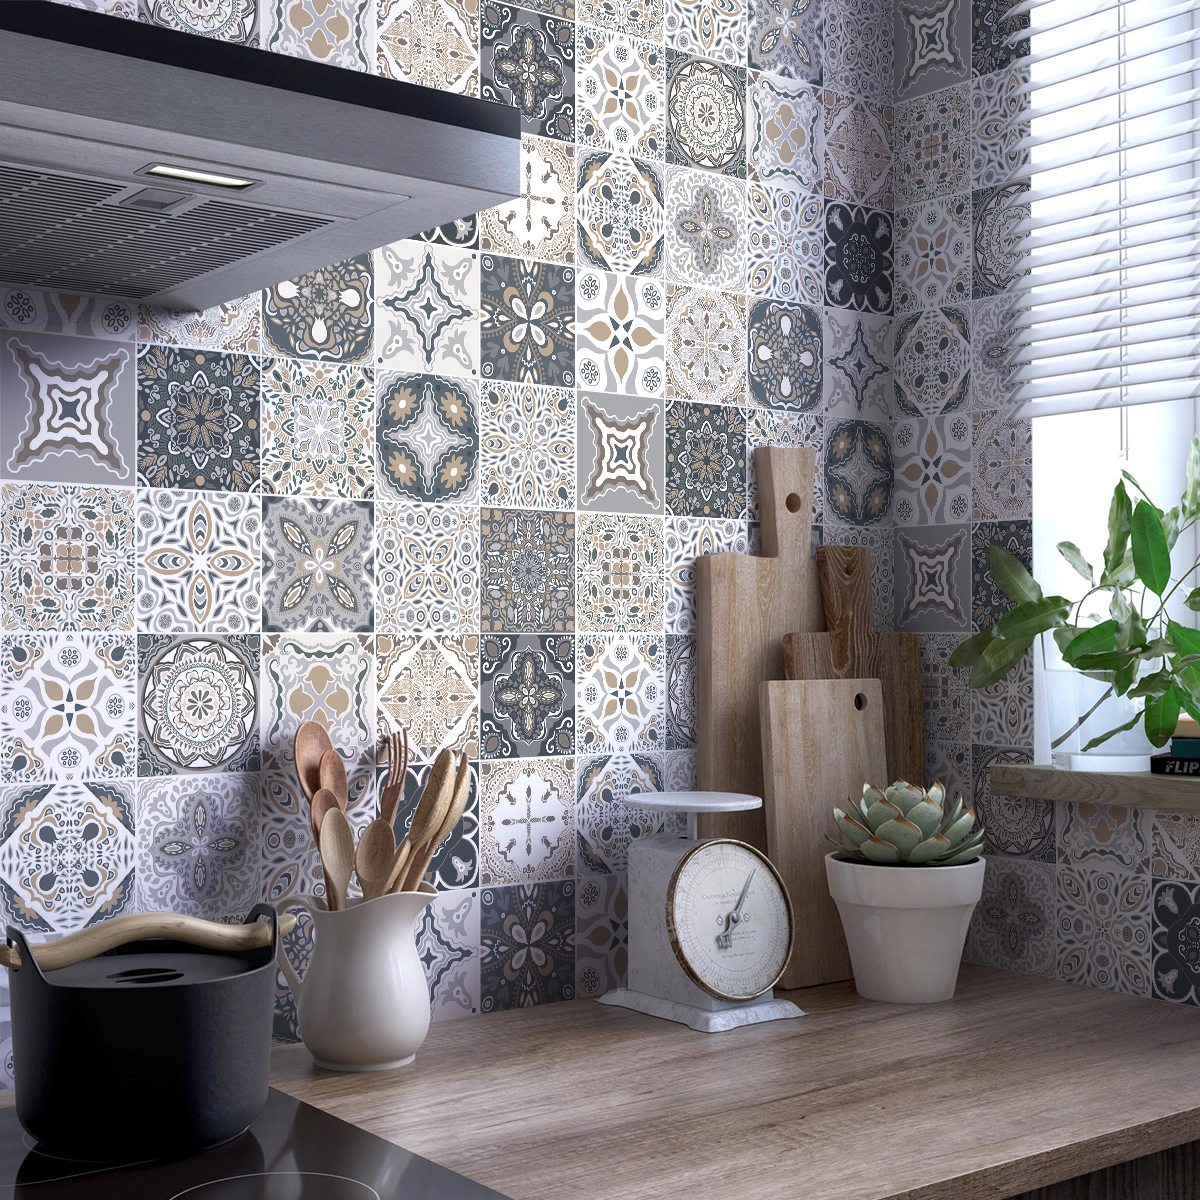 Stickers Carrelage Cuisine: 9 Stickers Carreaux De Ciment Azulejos Orfeo